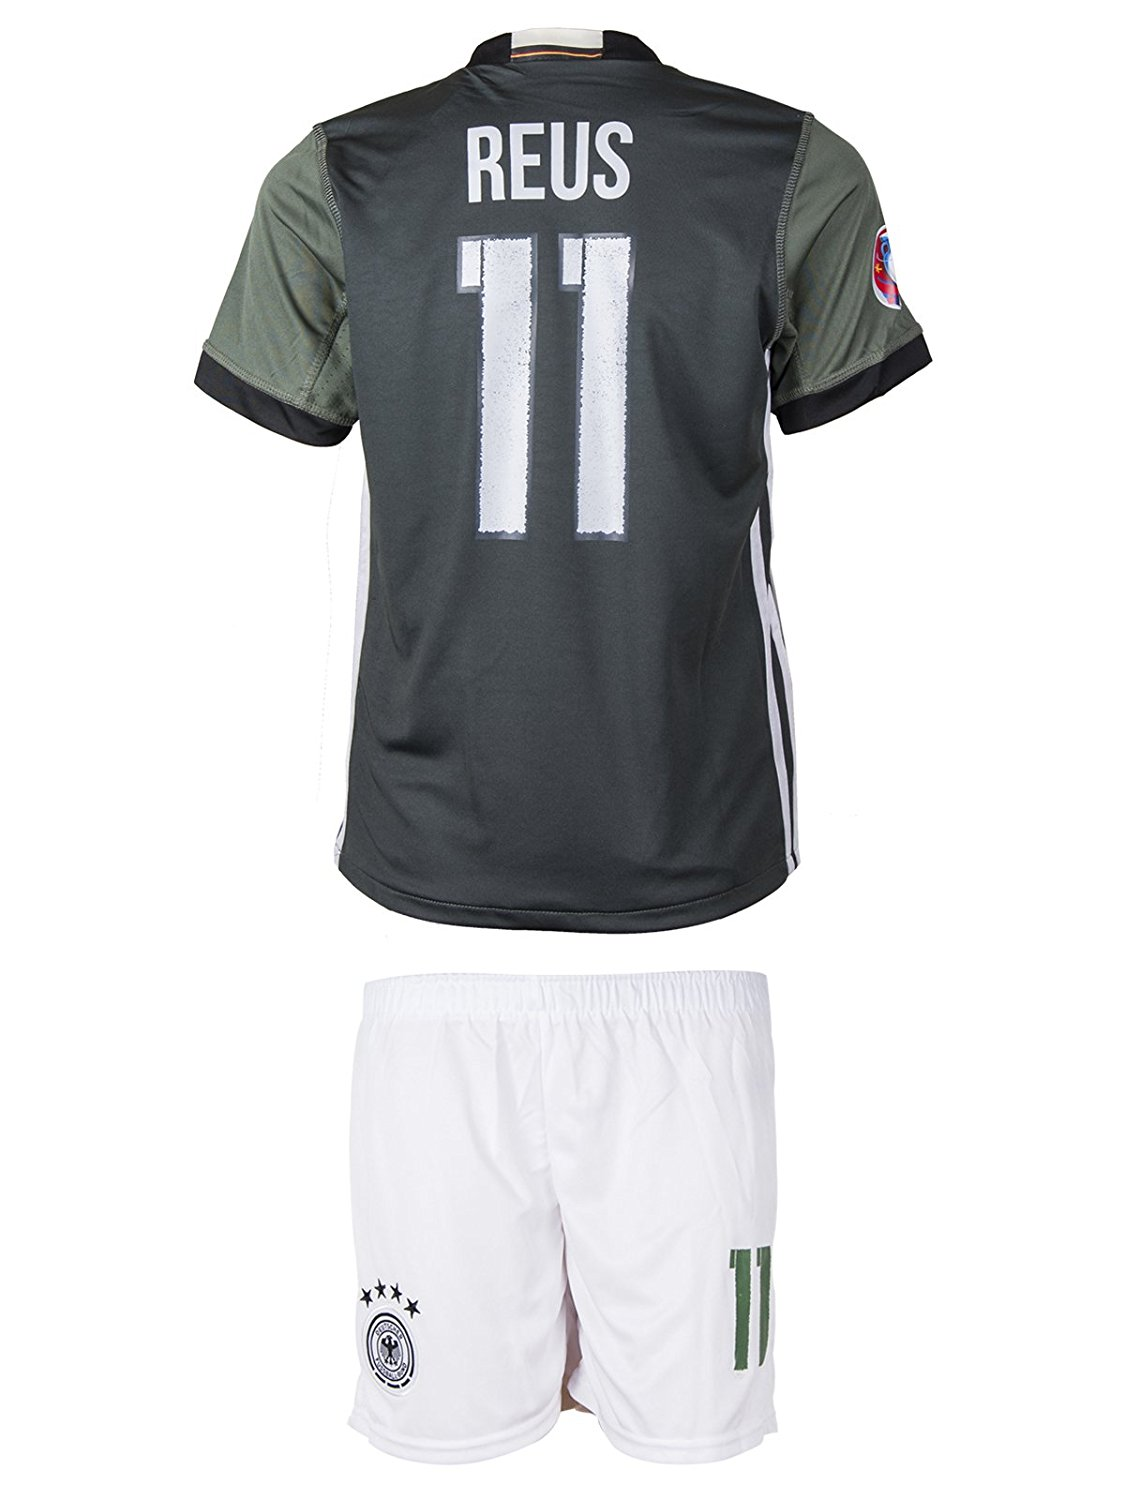 Germany Reus #21 Kids Jersey || Season 2016 2017 || Away Edition (XX-Large/12-13 Ages)